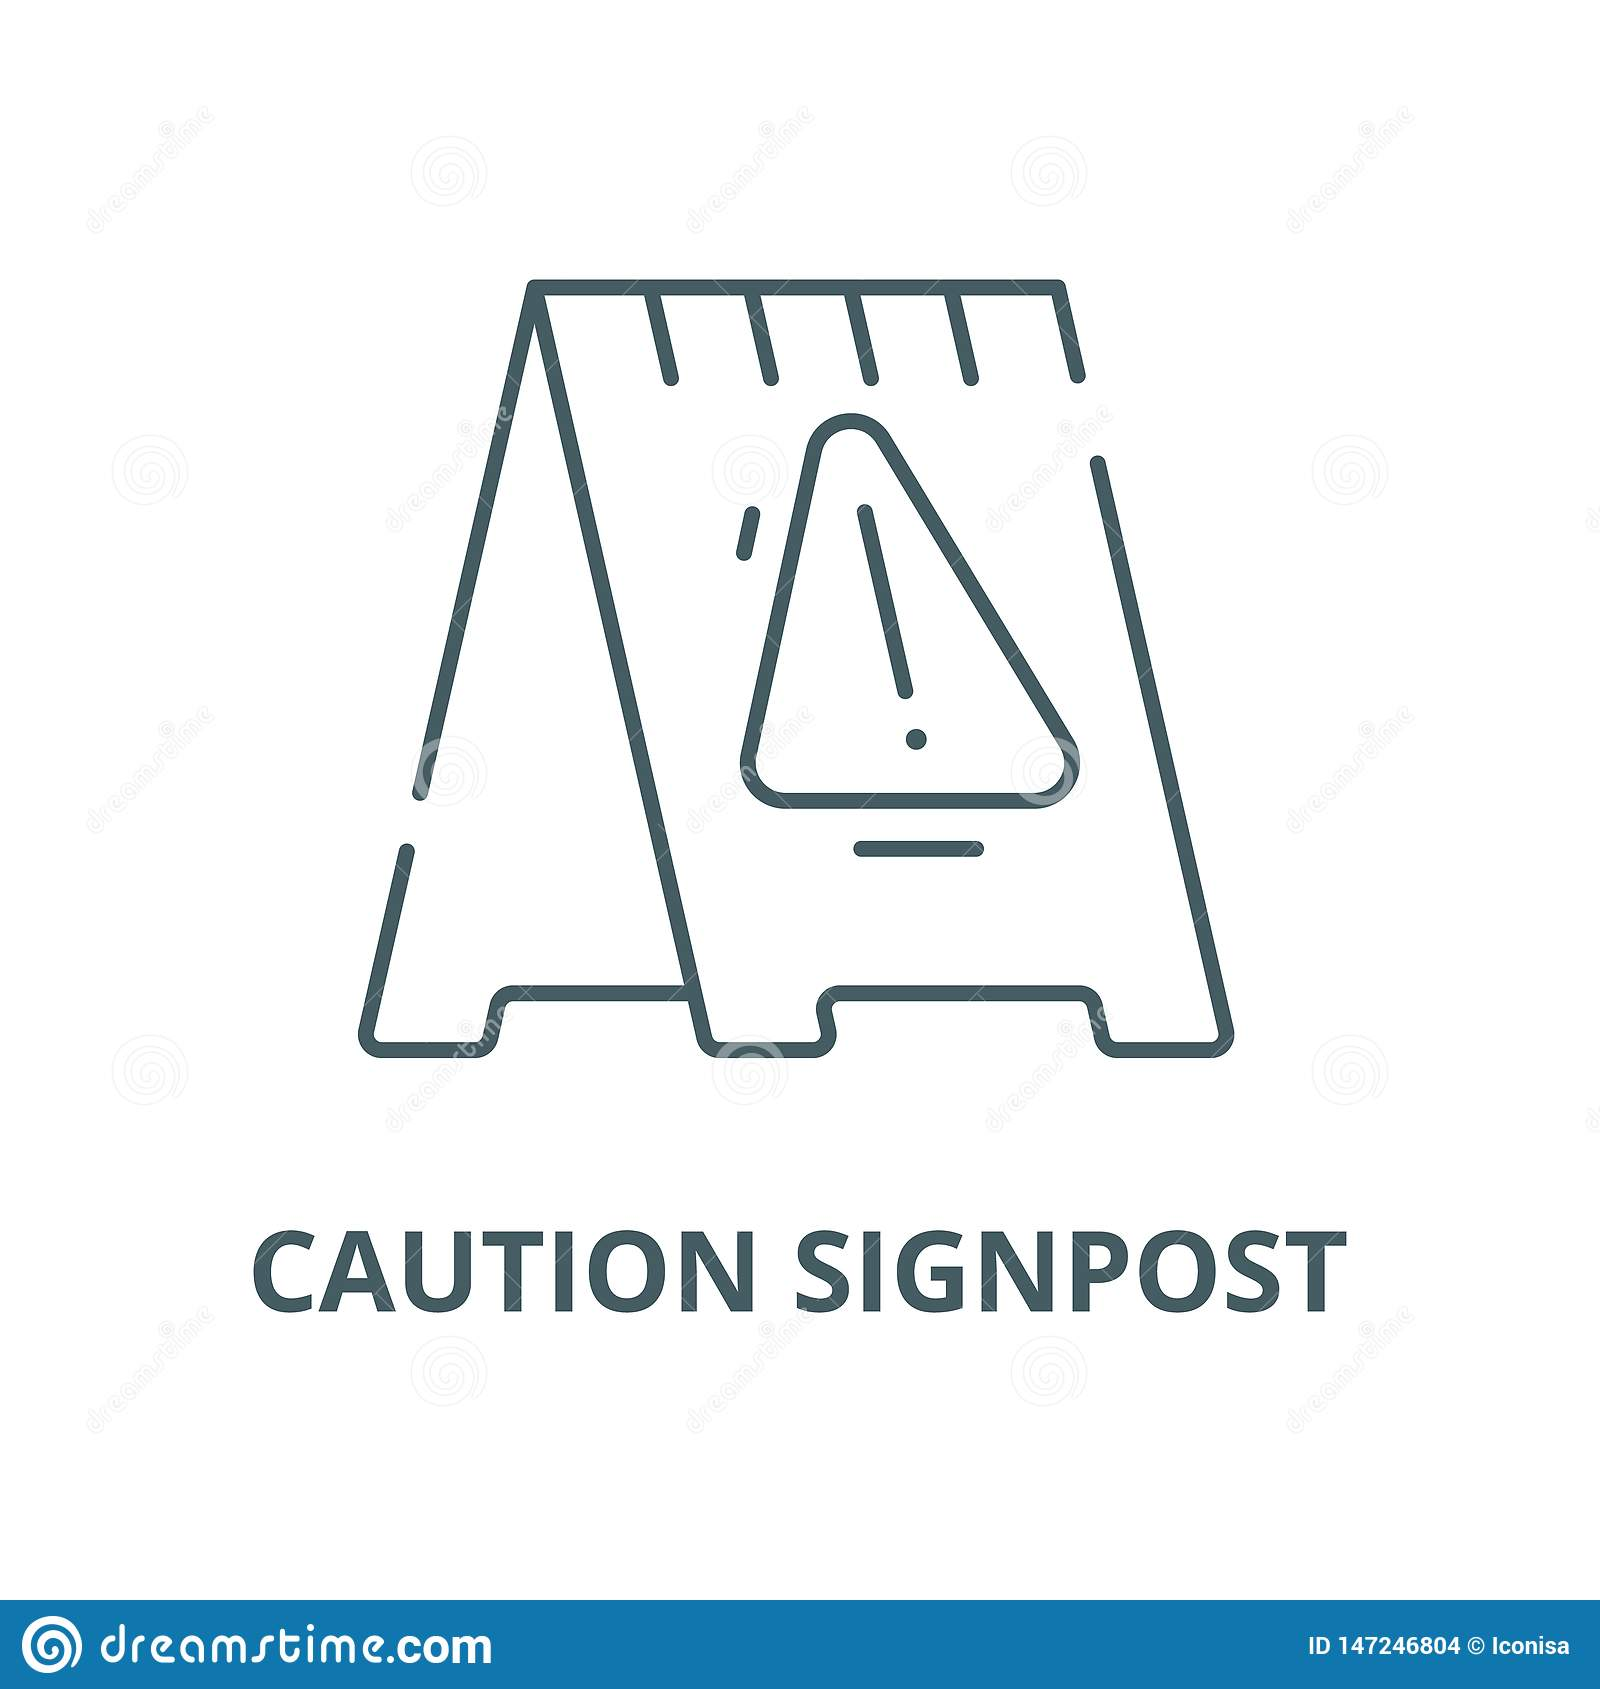 Caution signpost vector line icon, linear concept, outline sign, symbol